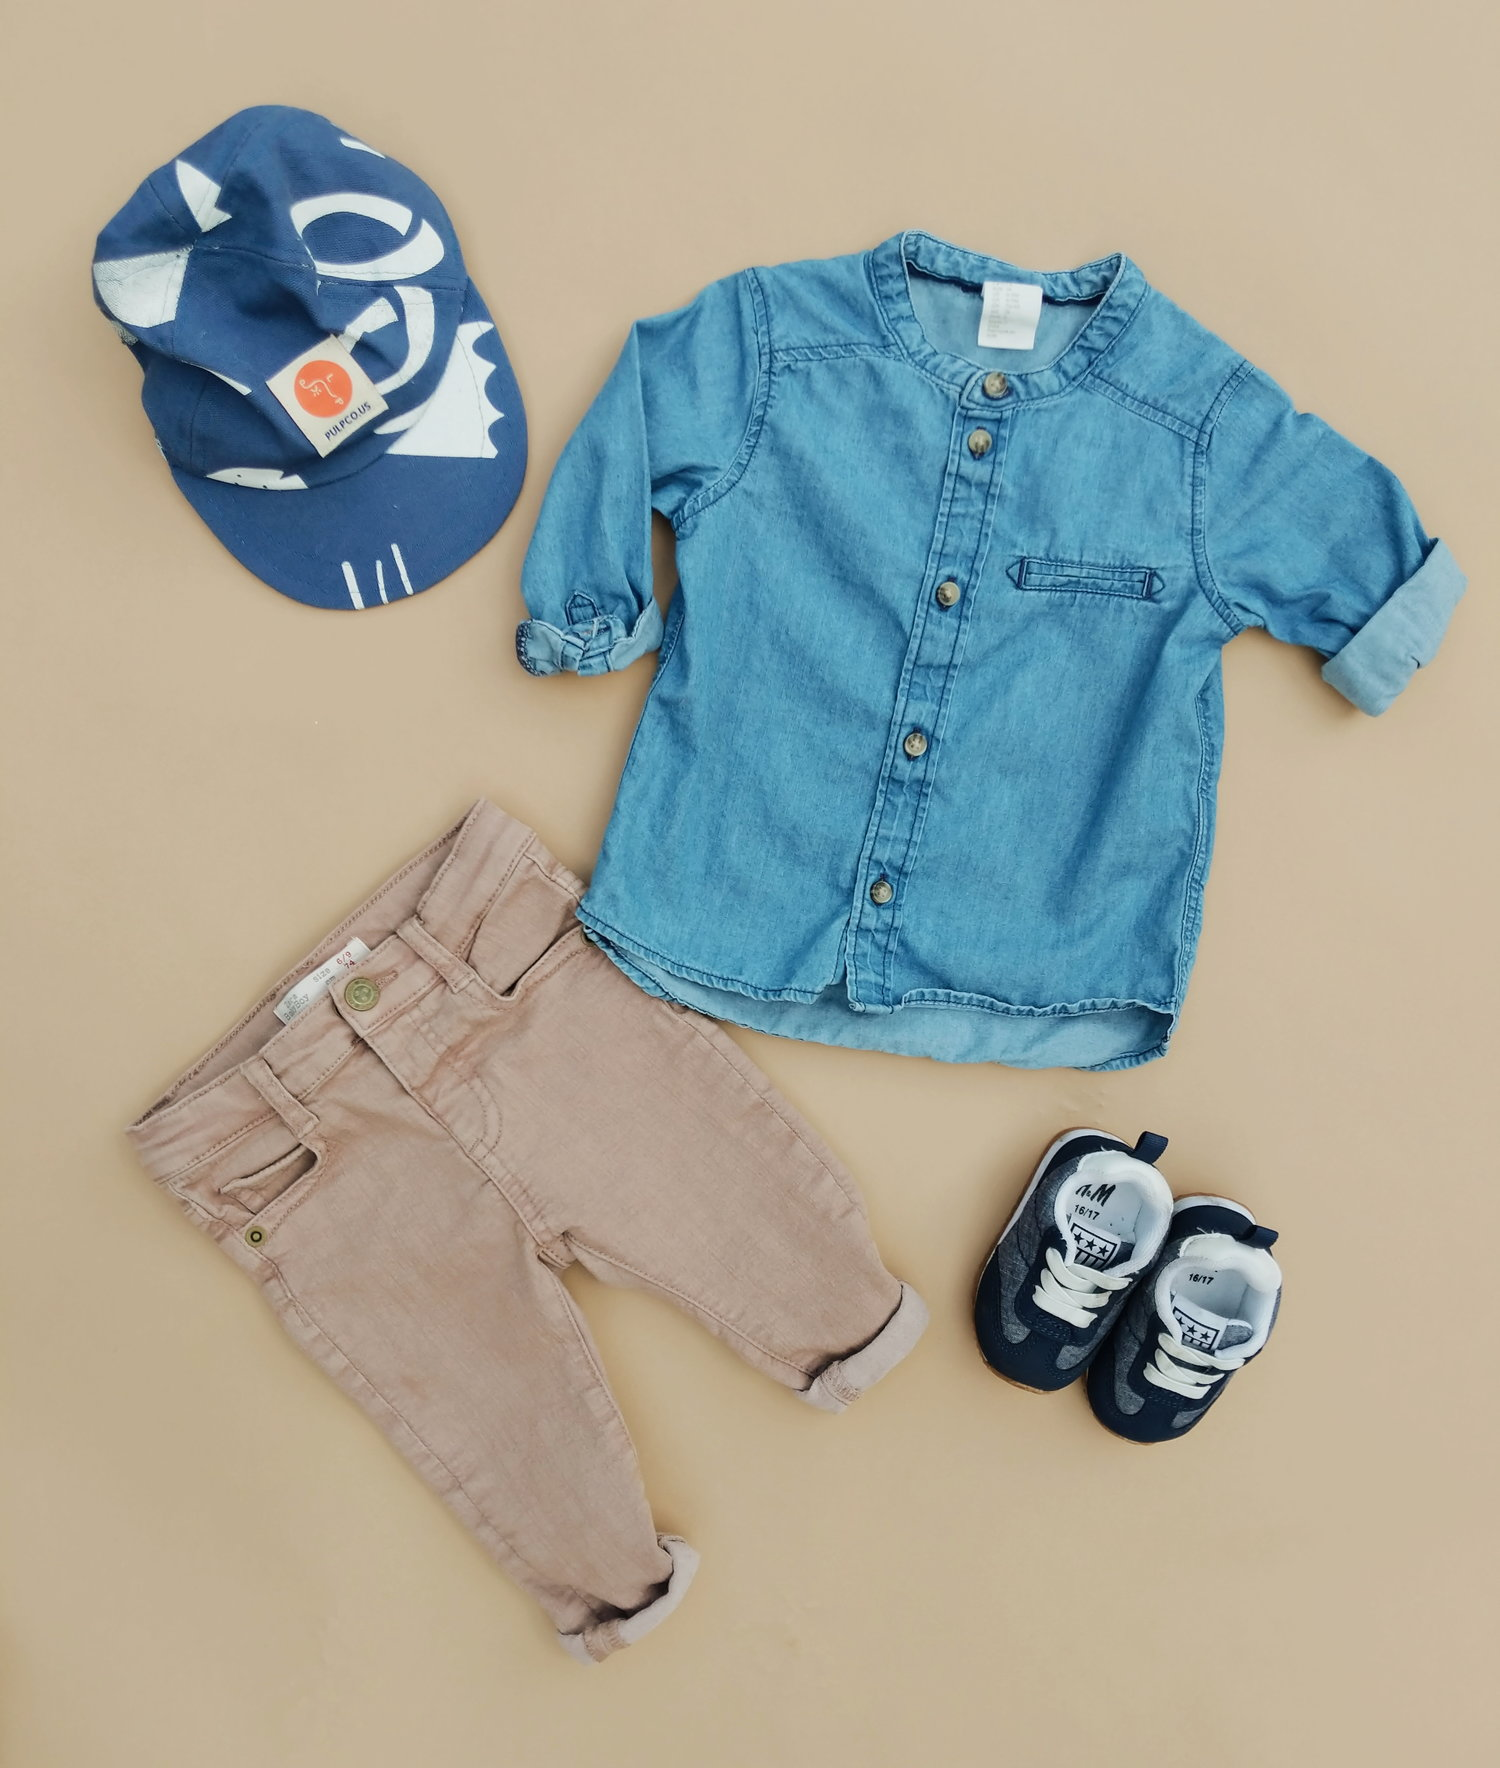 552751d2 Hip-Baby-Boy-Clothes-03.jpg. Hat from PULP CO. / Shirt from H&M / Pants  from ZARA / Shoes ...